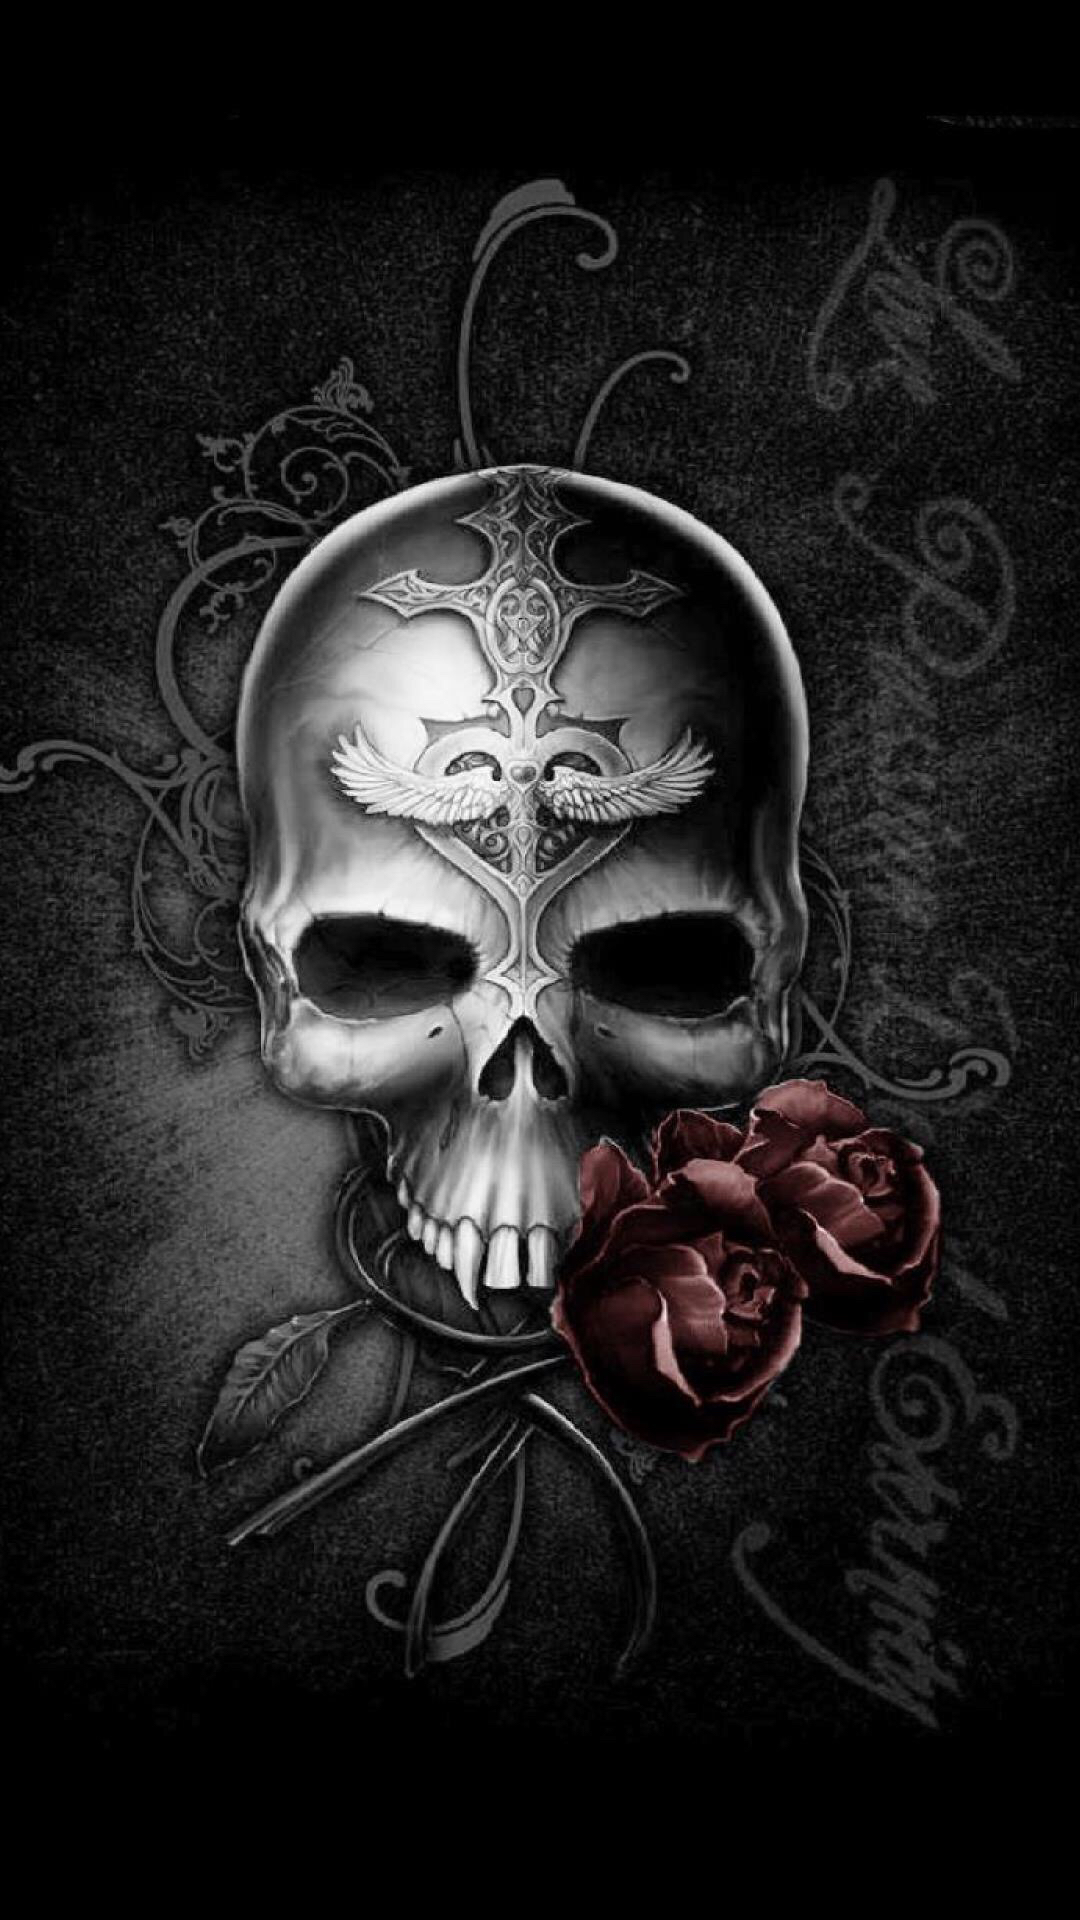 Badass wallpapers for android 03 0f 40 dark skull and rose - Hd rose wallpaper for android mobile ...